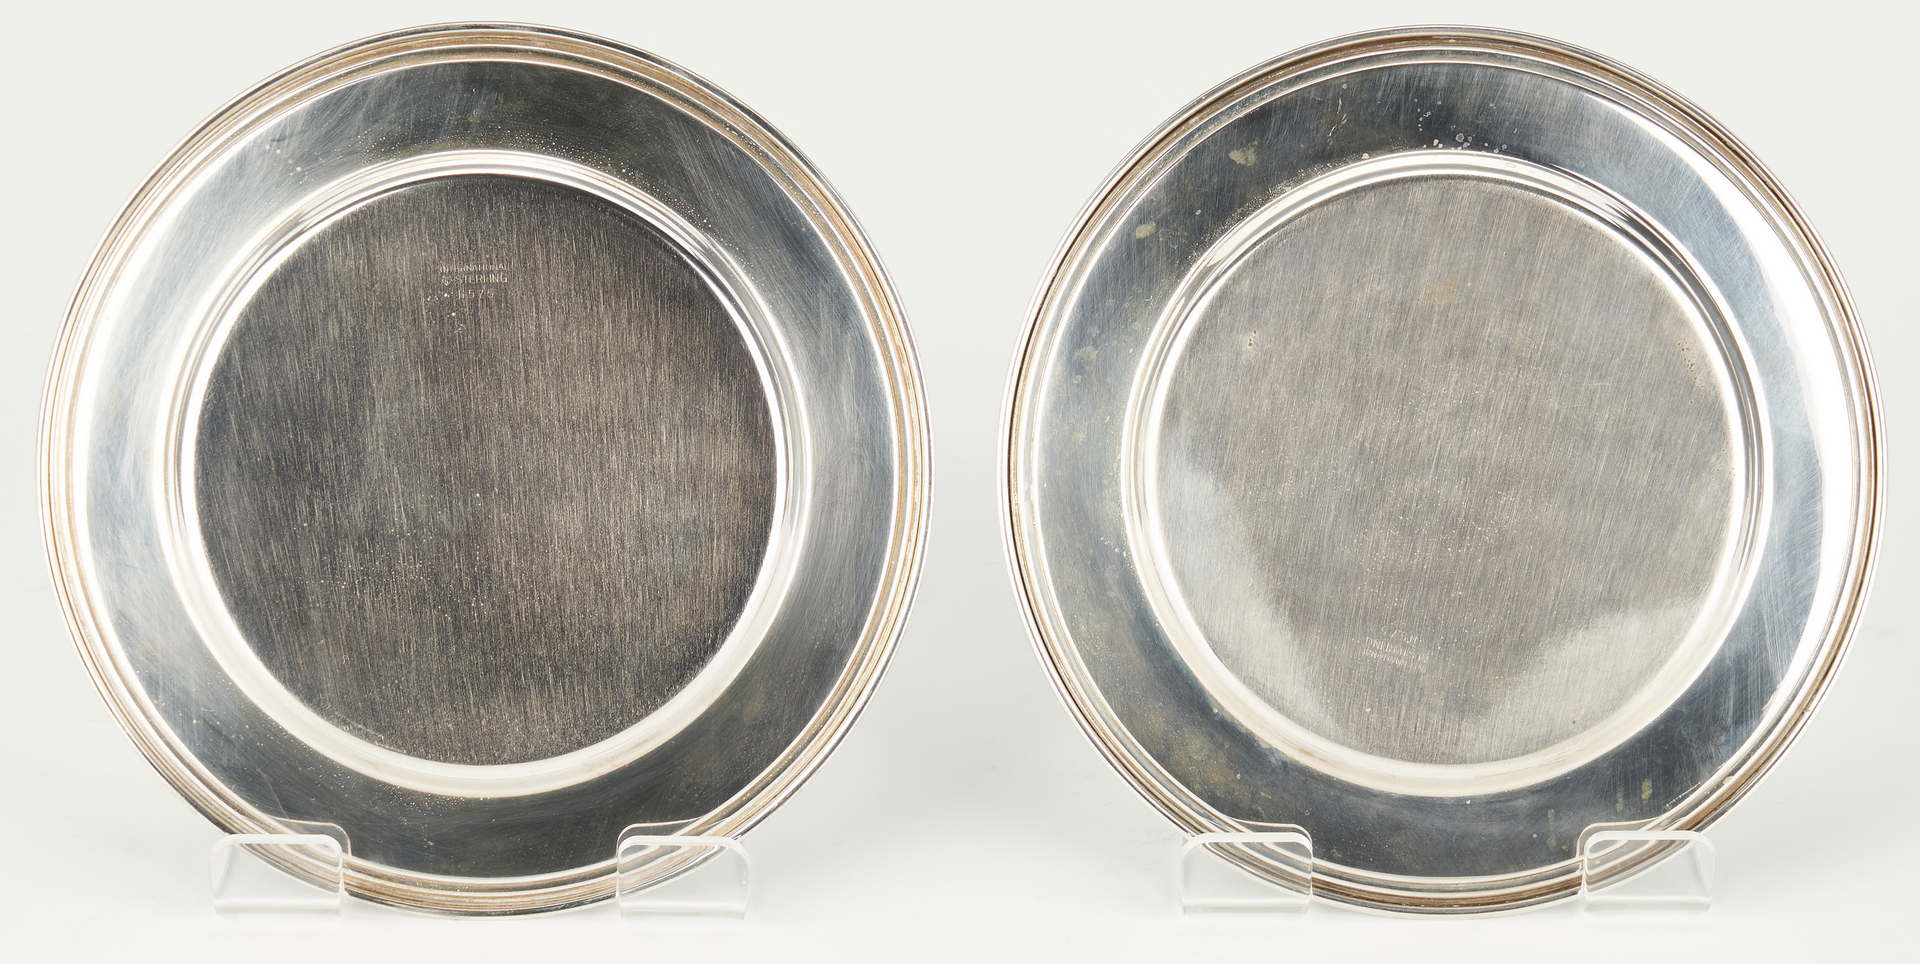 Lot 289: Group of 20 Sterling Silver Bread Plates